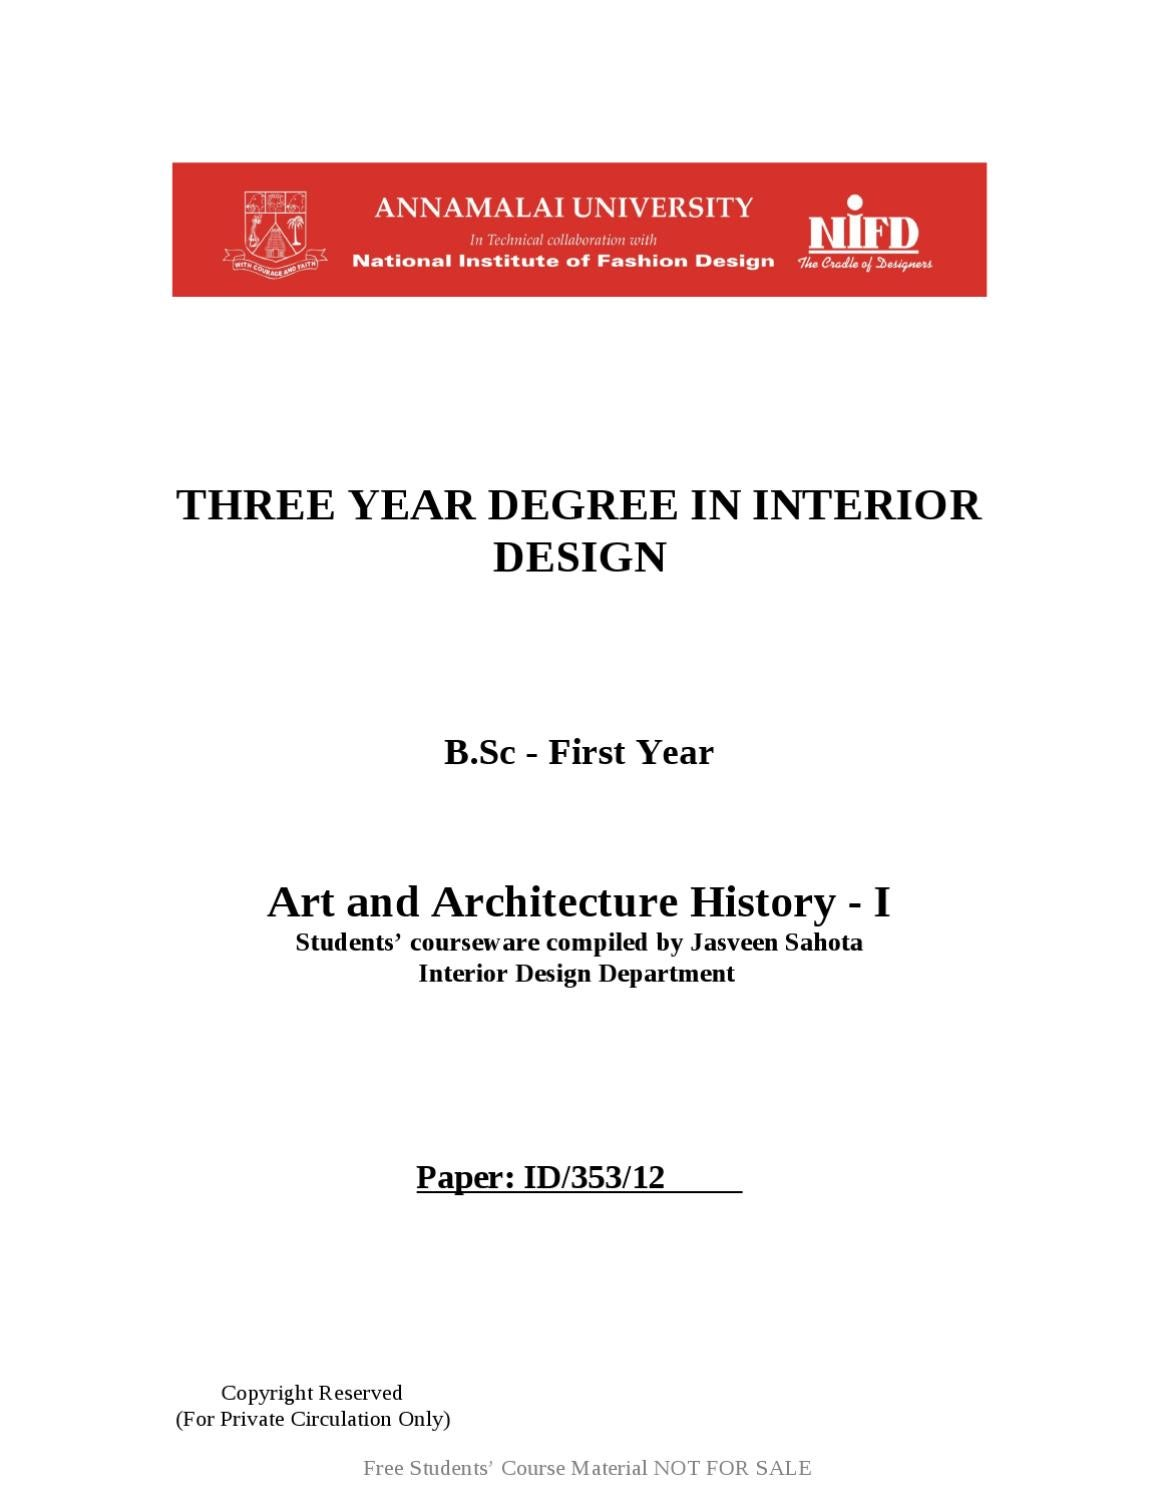 History Of Interior Design By Jasveen Sahota